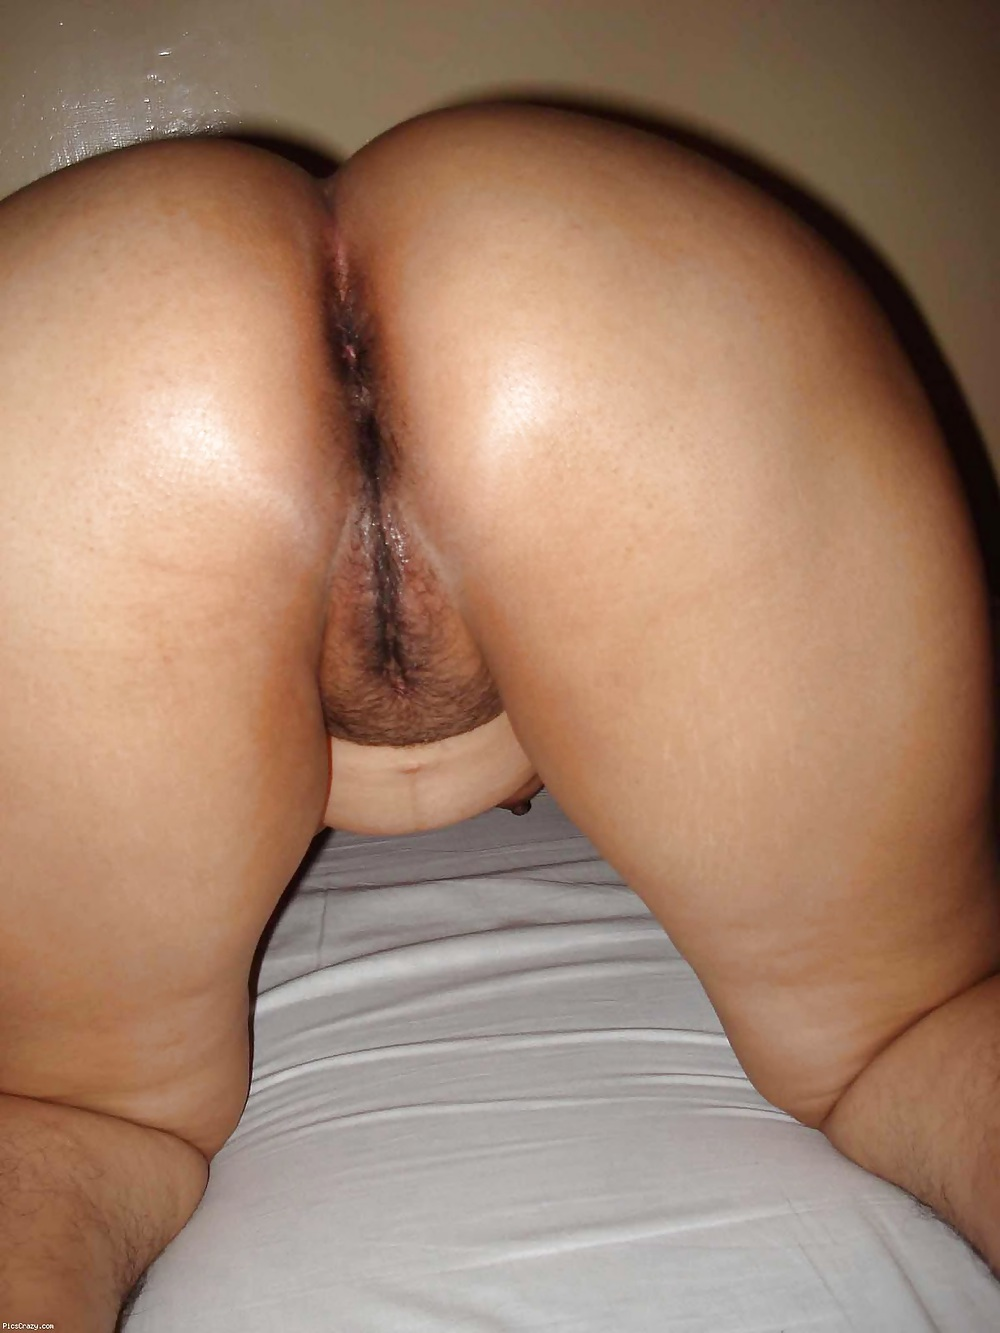 Small indian pussy ass pics